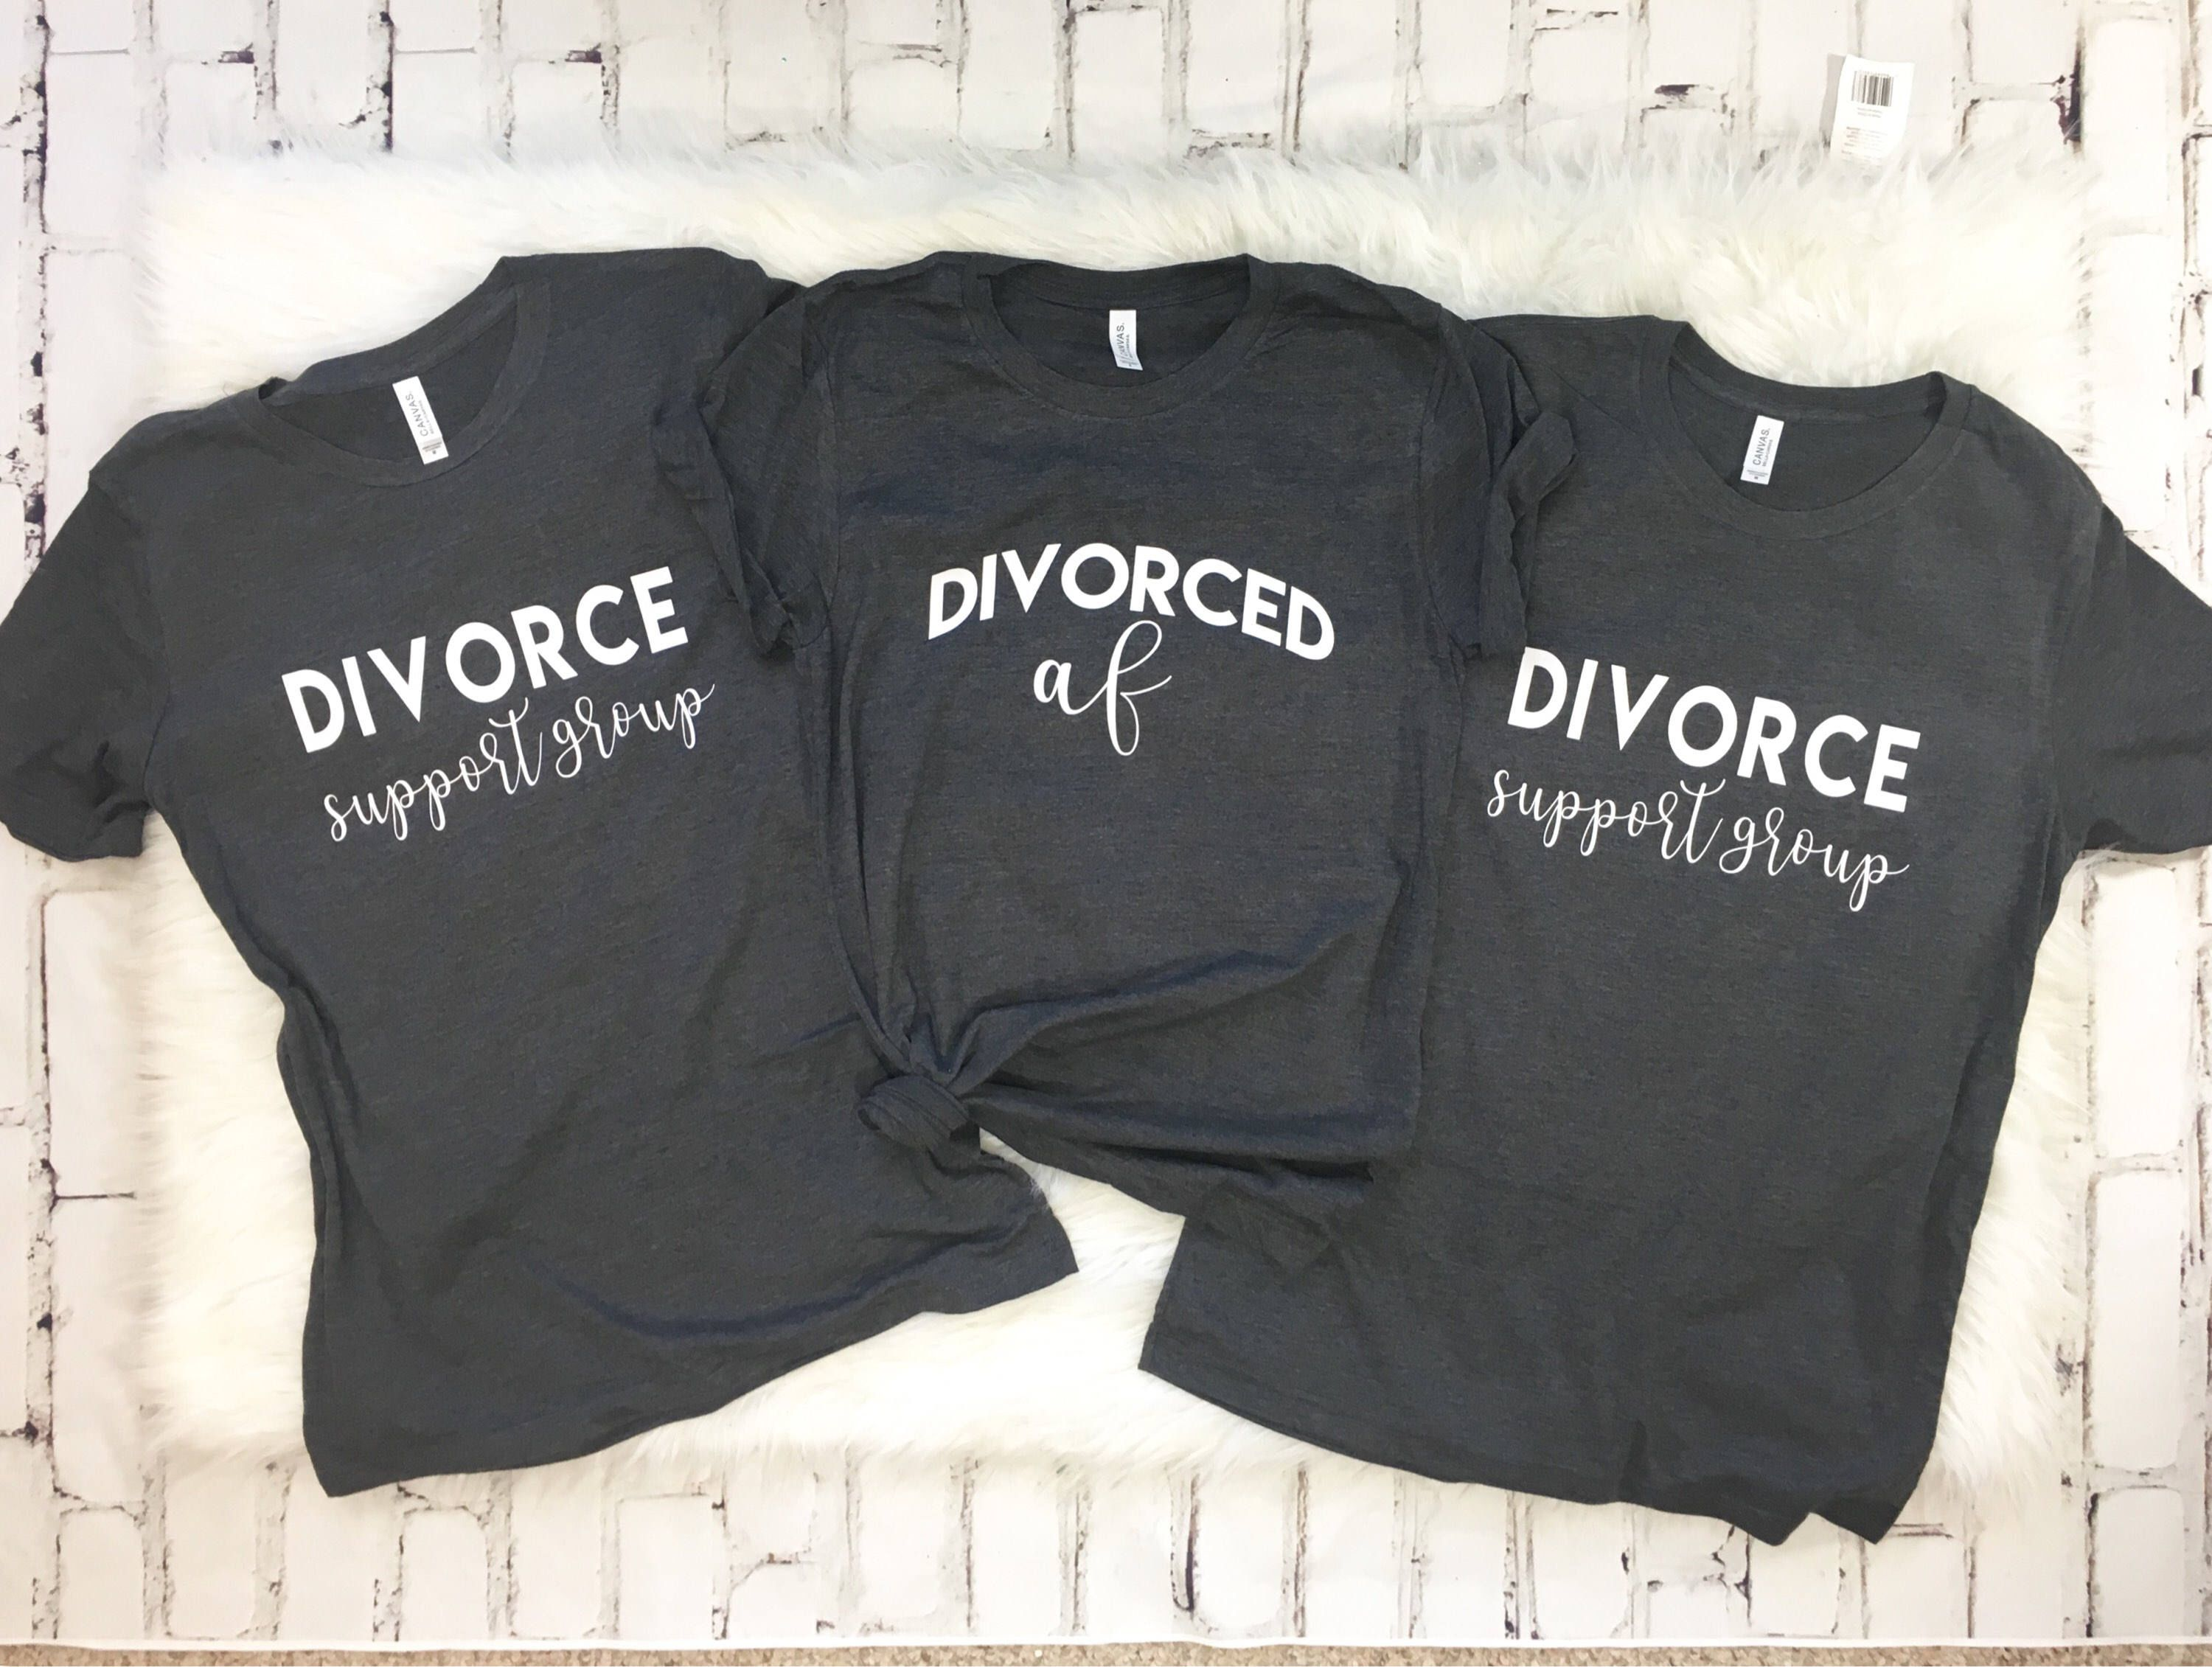 d4f854961 Excited to share the latest addition to my #etsy shop: Divorced AF Shirt  for Women, Divorced shirt, Divorced AF Shirt, Graphic tee, AF t-shirt, ...